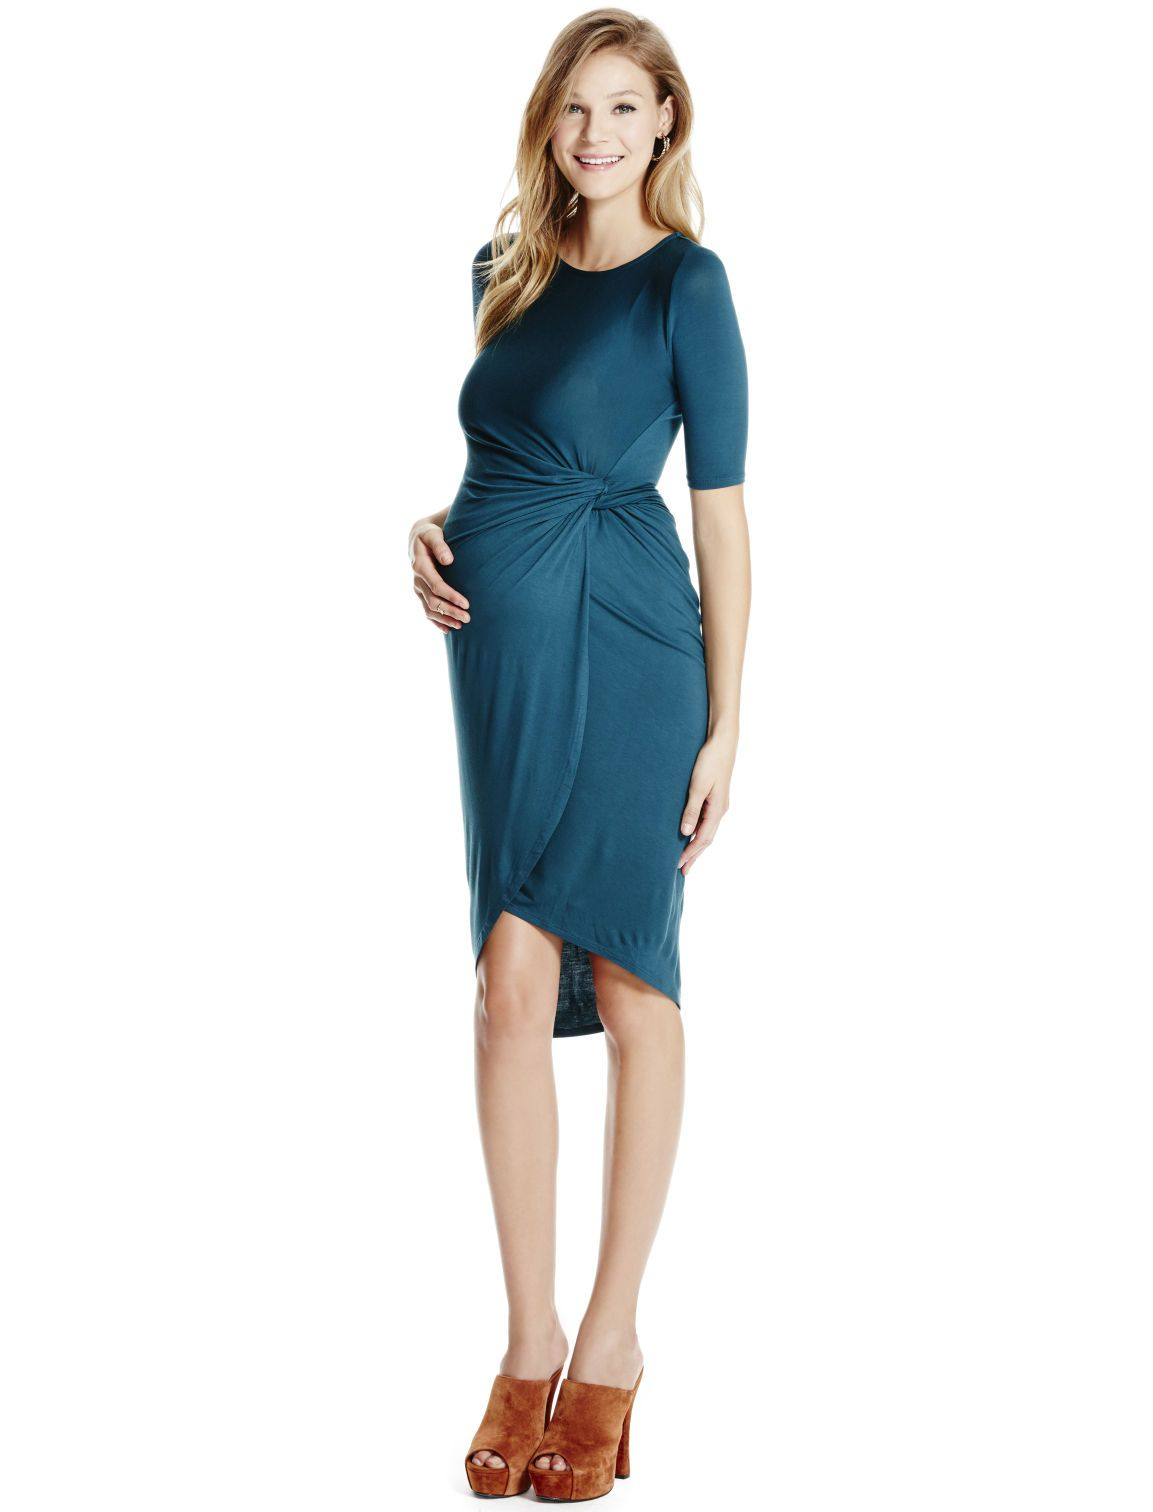 Teal tulip hem 34 sleeve ruched maternity dress by jessica teal tulip hem 34 sleeve ruched maternity dress by jessica simpson available ombrellifo Image collections